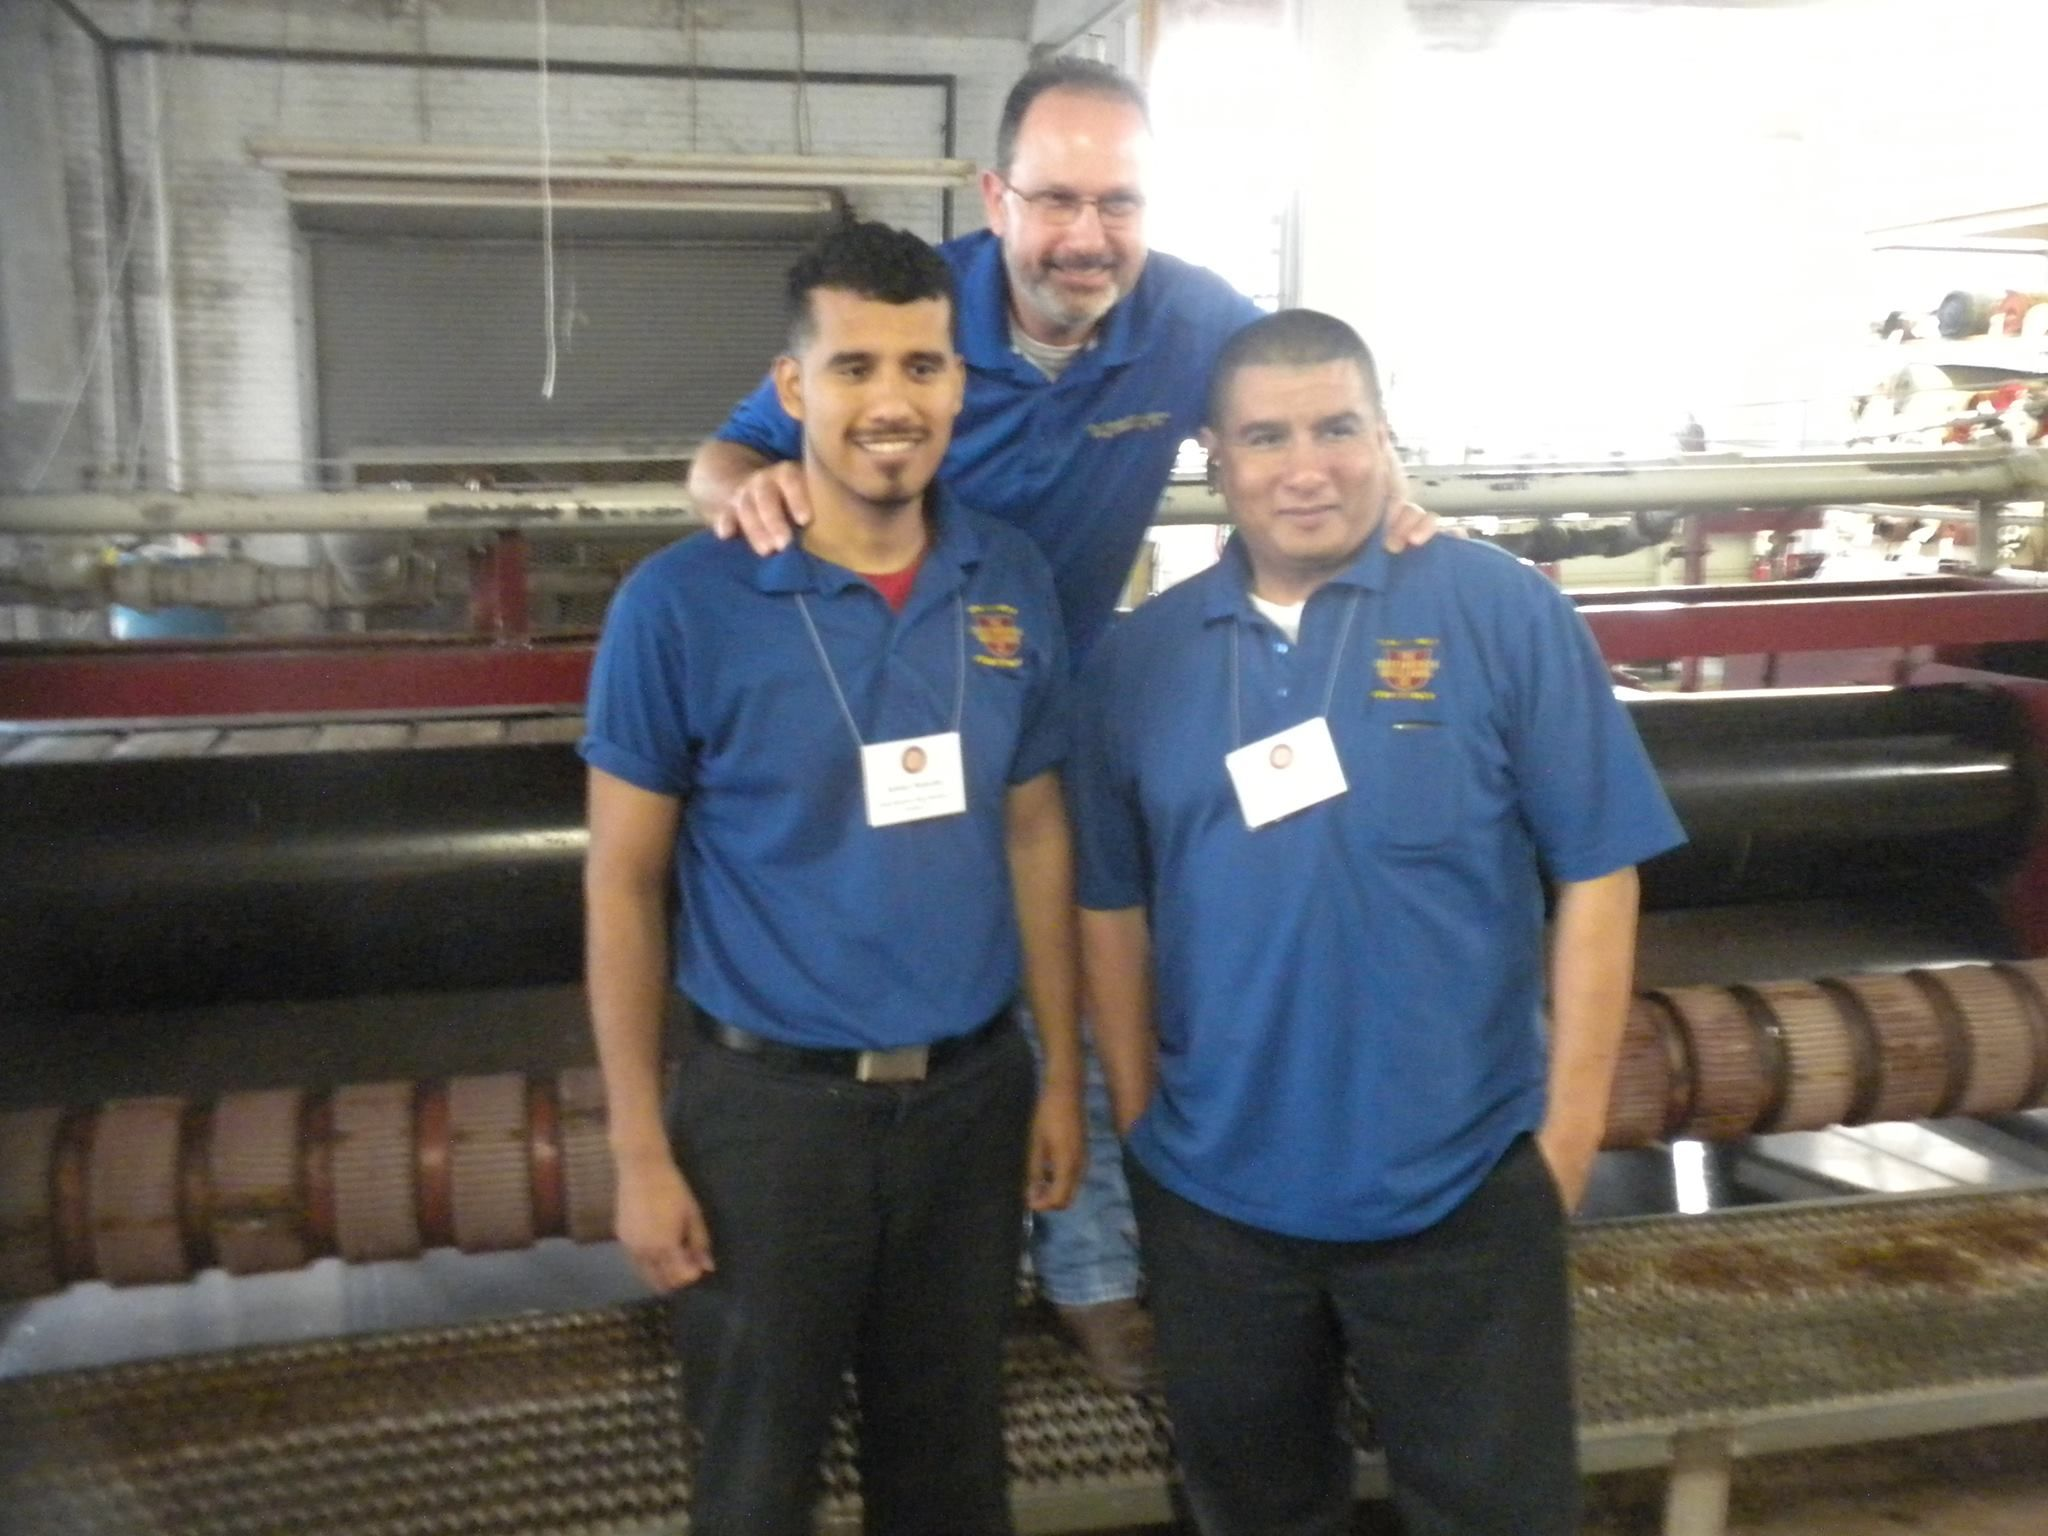 Richard Middleton Of The Great American Rug Cleaning Co Tomball Texas And His Rug Team With Images Mens Polo Shirts Mens Tops